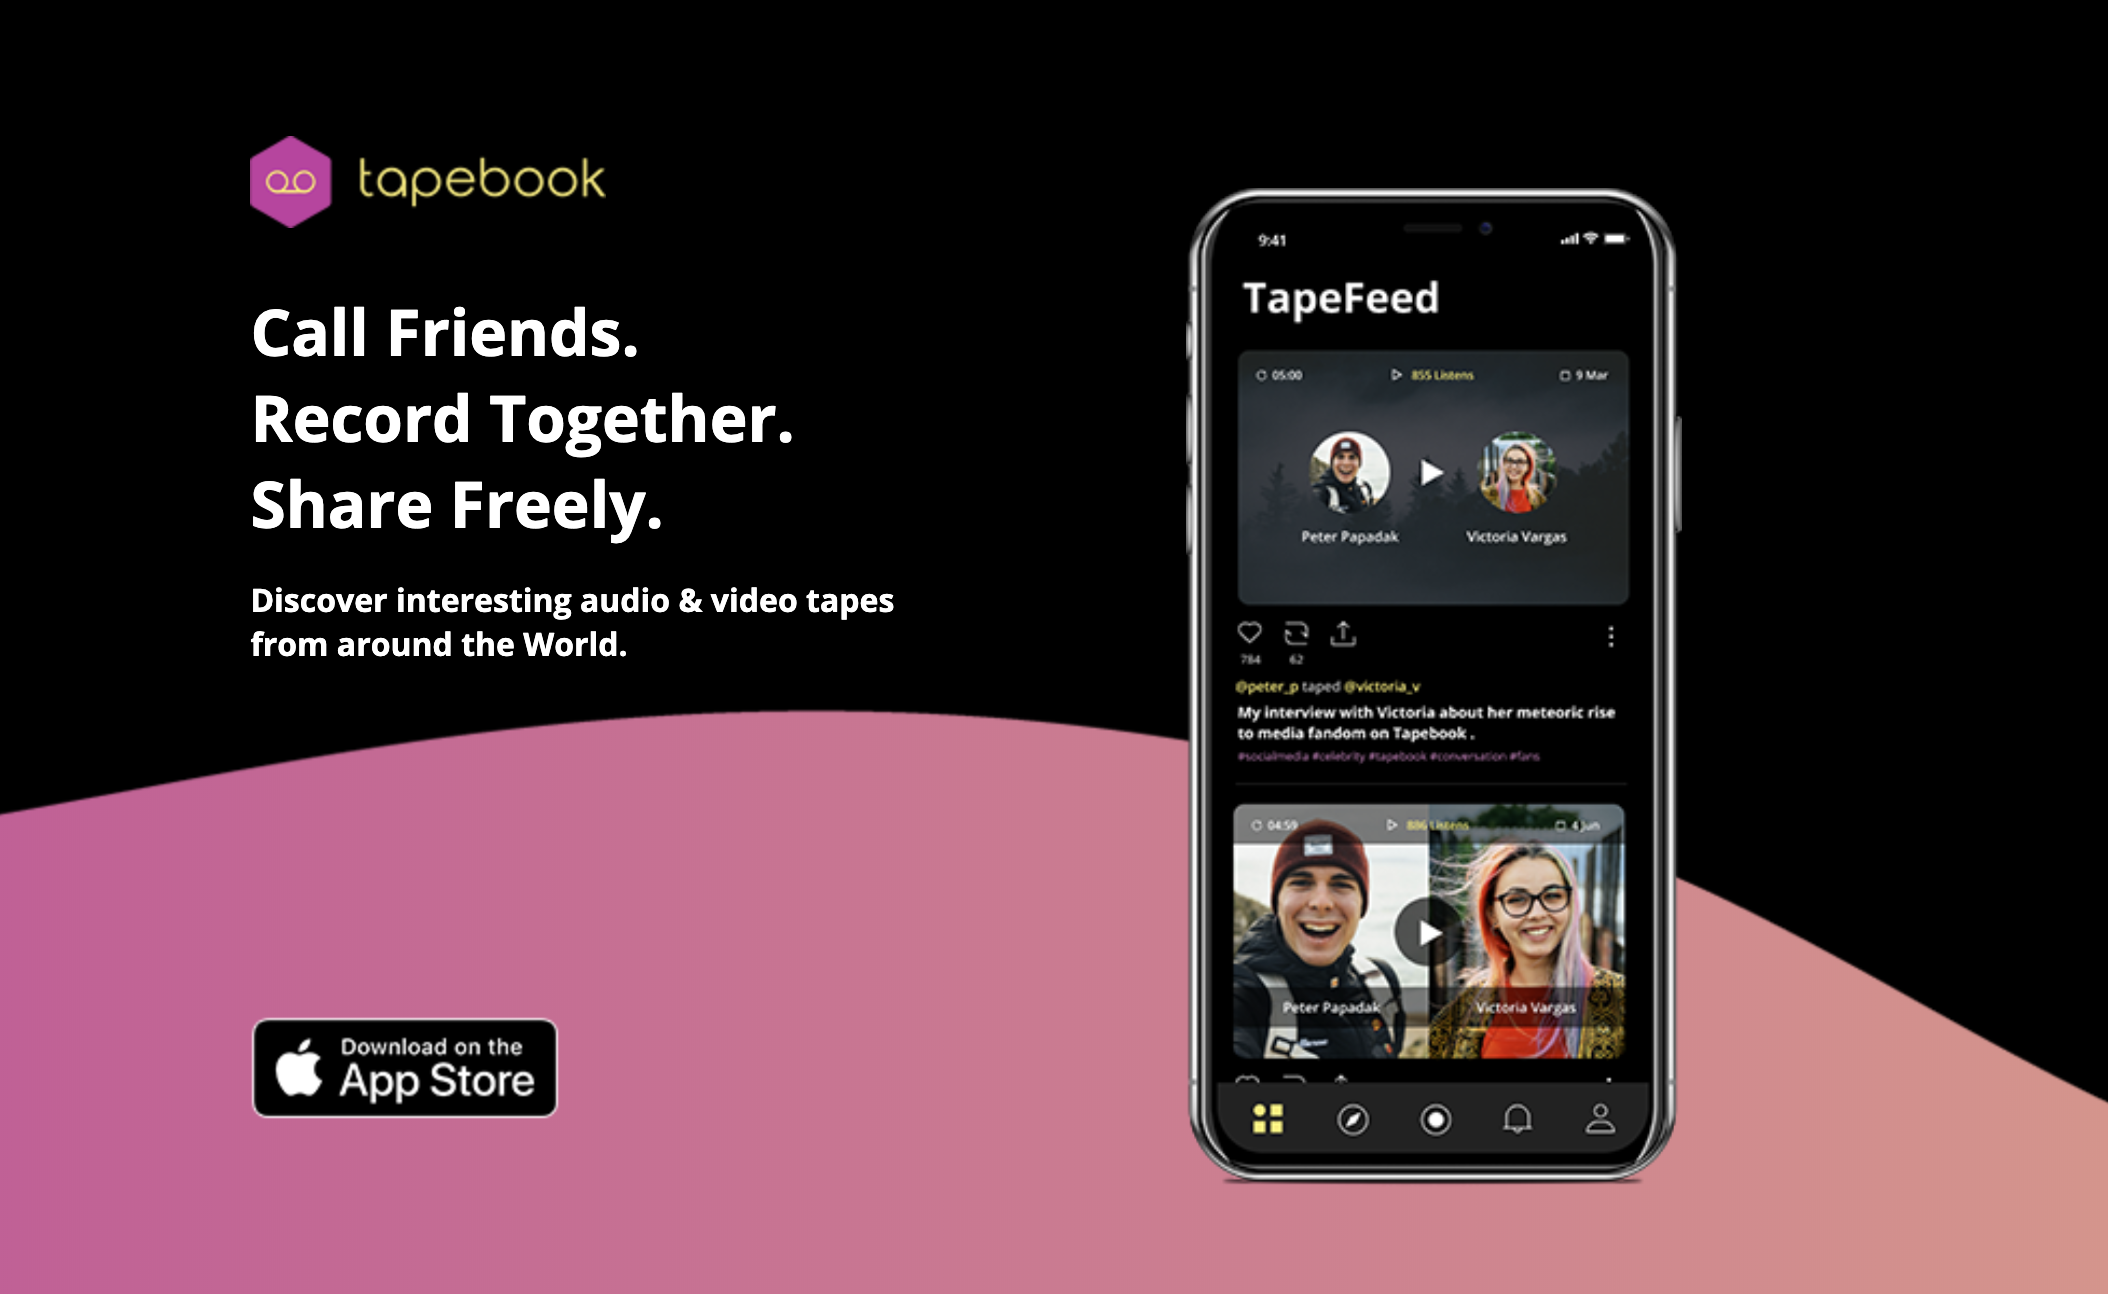 Tapebook: Call Friends. Record Together. Share Freely.